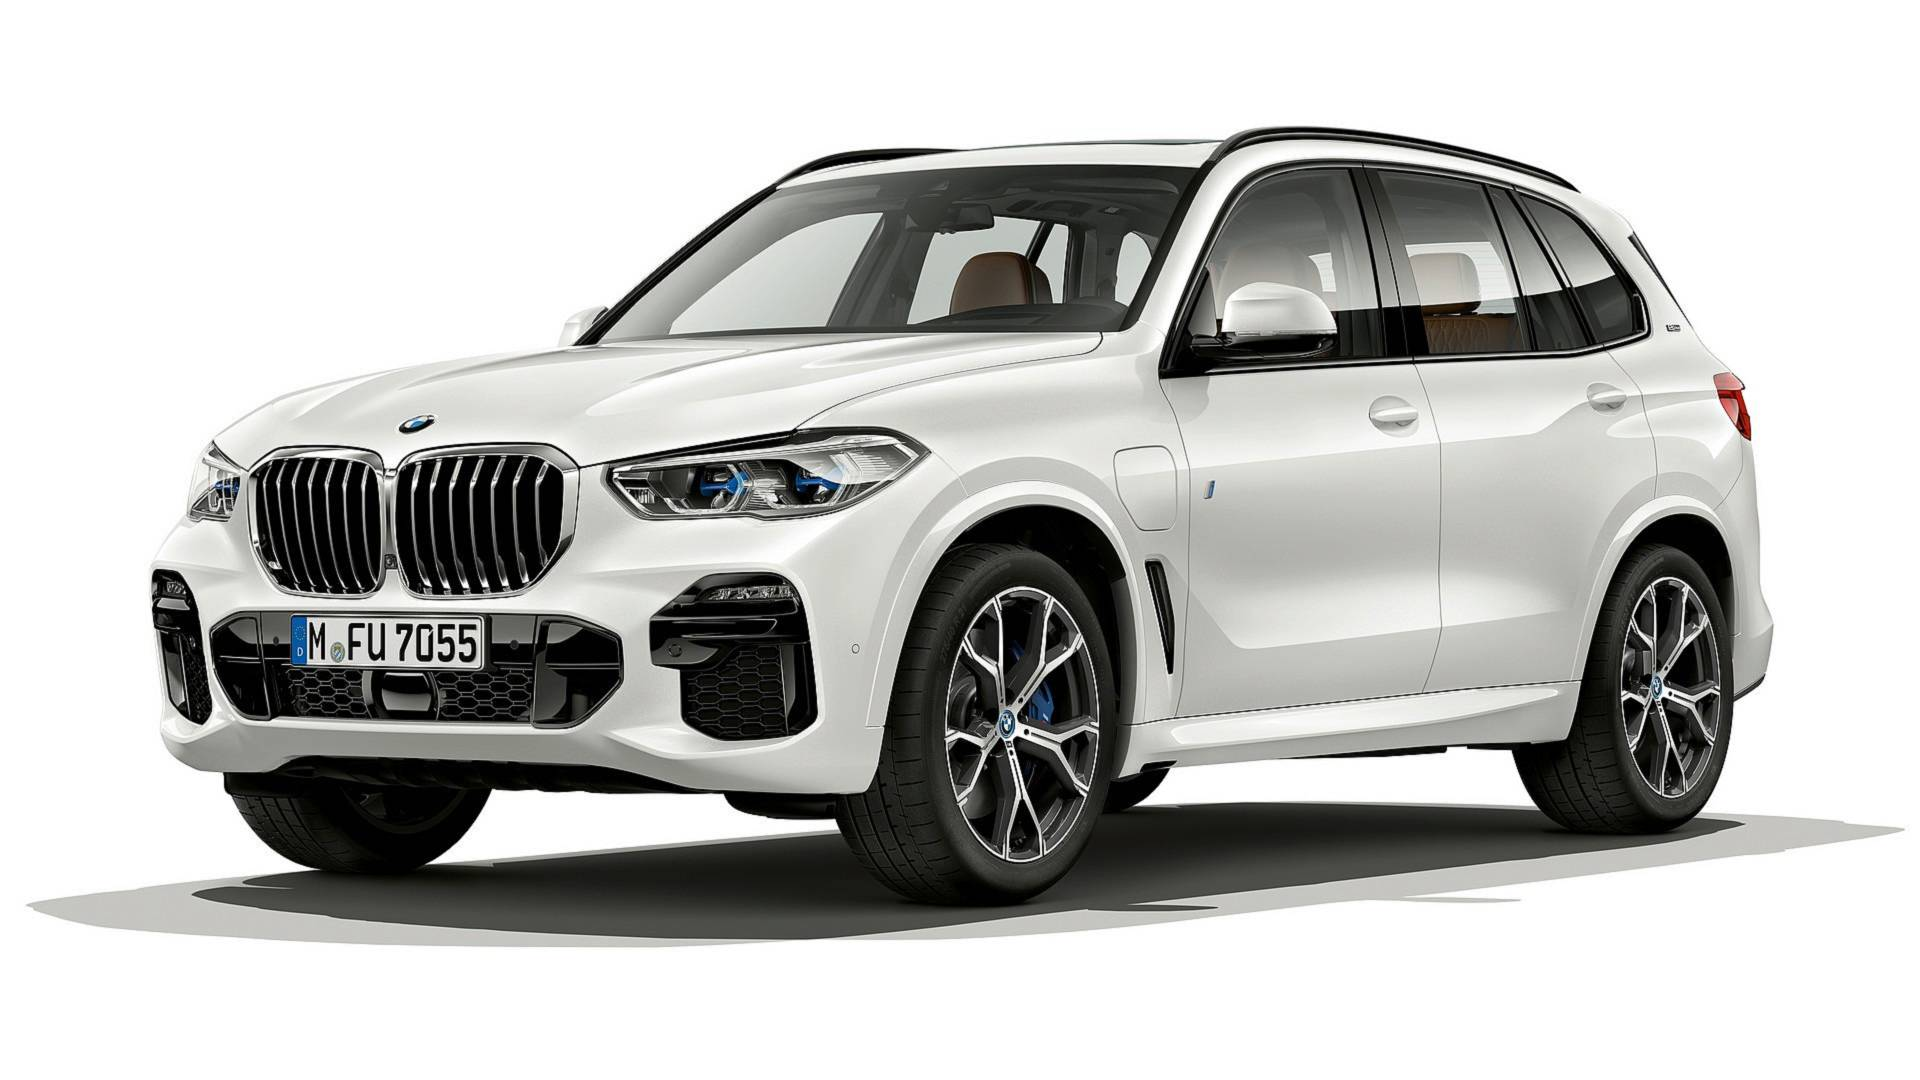 Electrified 2019 Bmw X5 Xdrive45e Blends Power With Efficiency